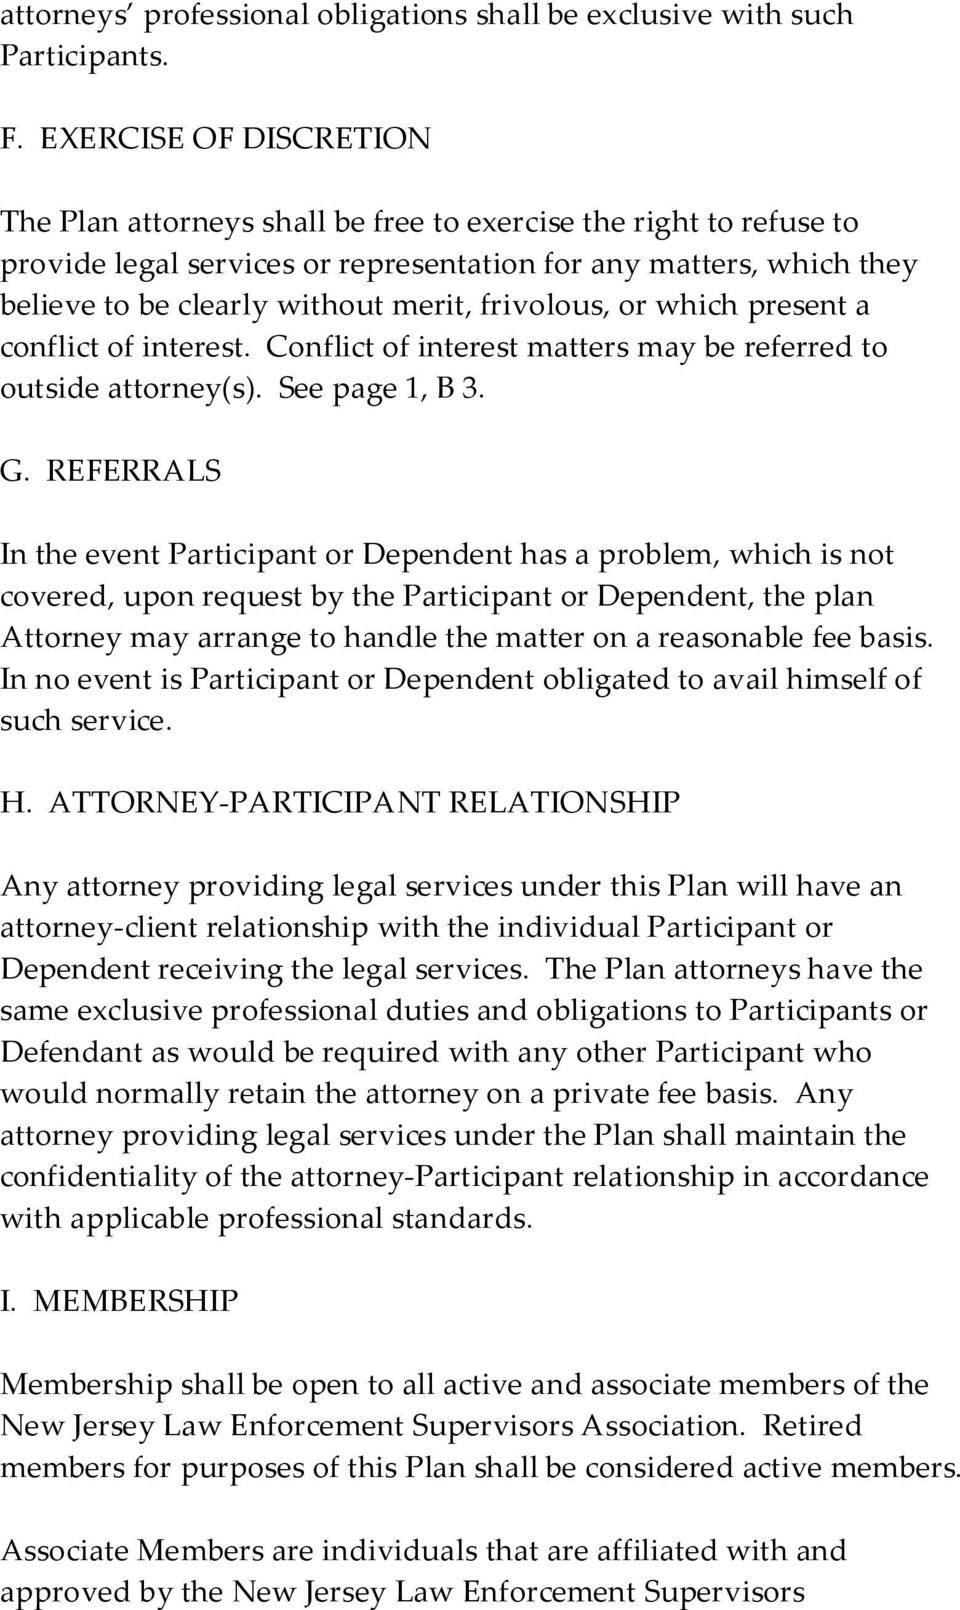 frivolous, or which present a conflict of interest. Conflict of interest matters may be referred to outside attorney(s). See page 1, B 3. G.